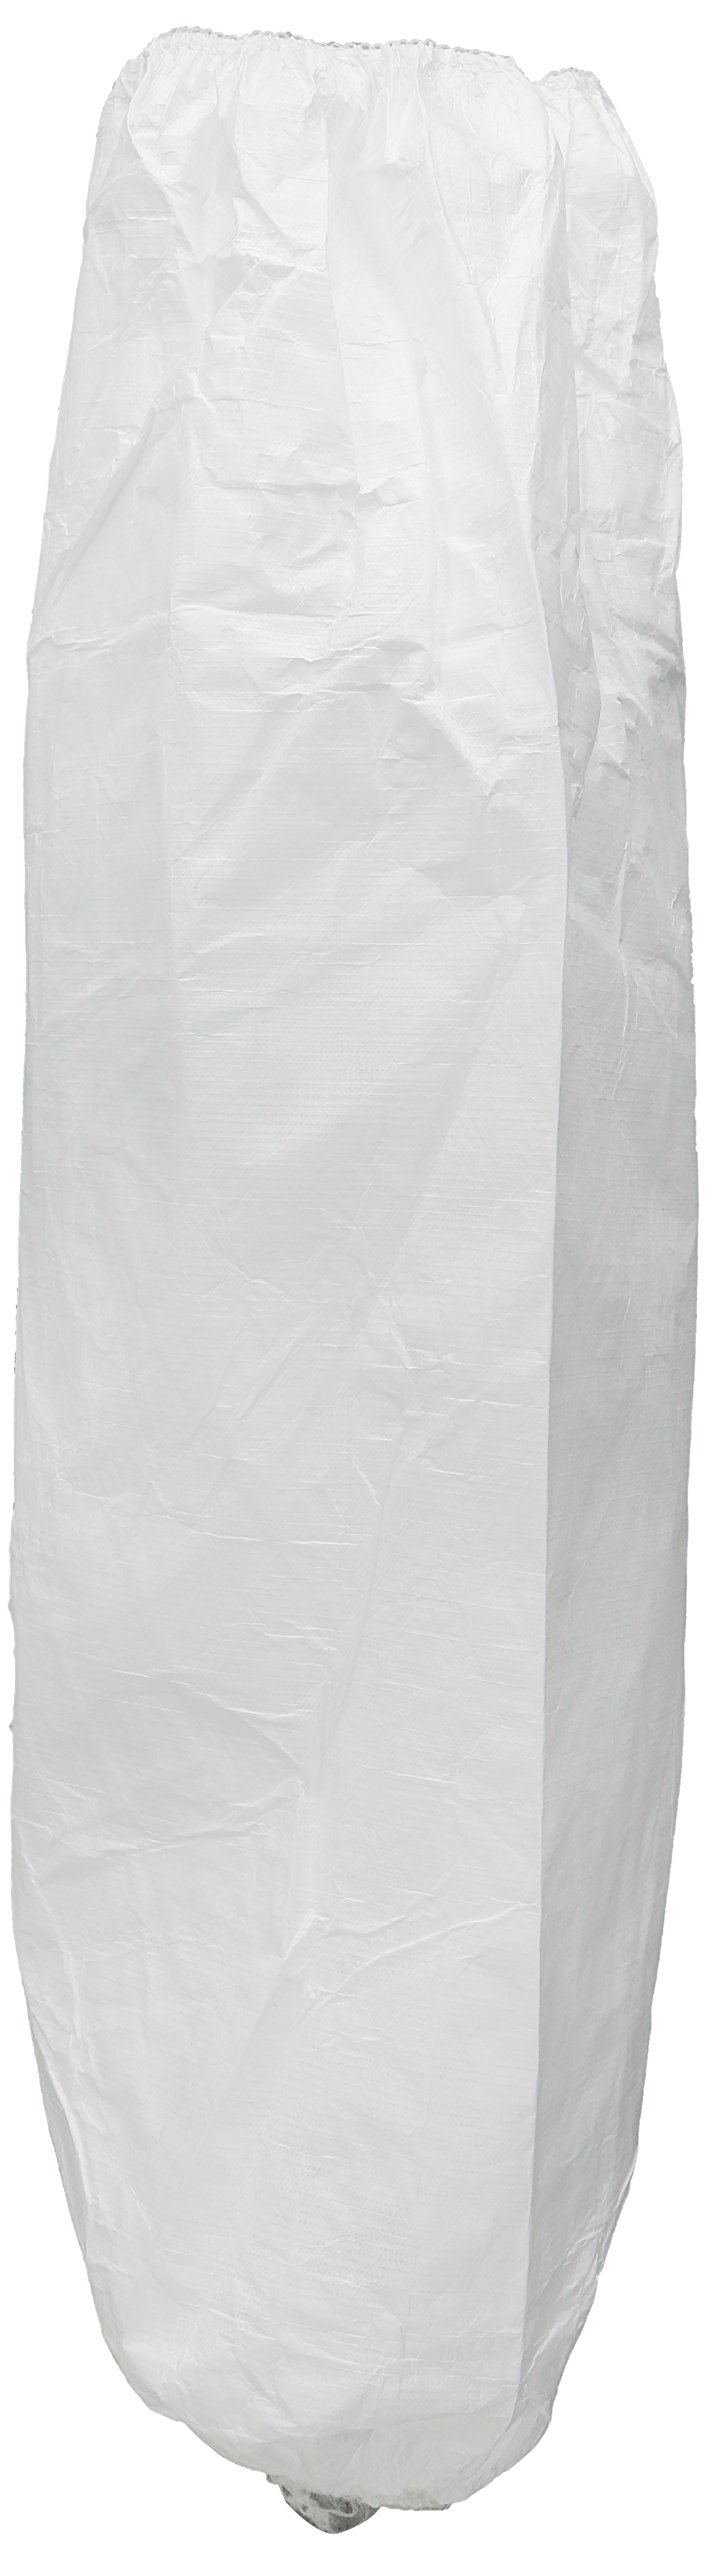 Dupont TY500SWH00020000 Tyvek Sleeve, 18'' Long (Pack of 200) by DuPont